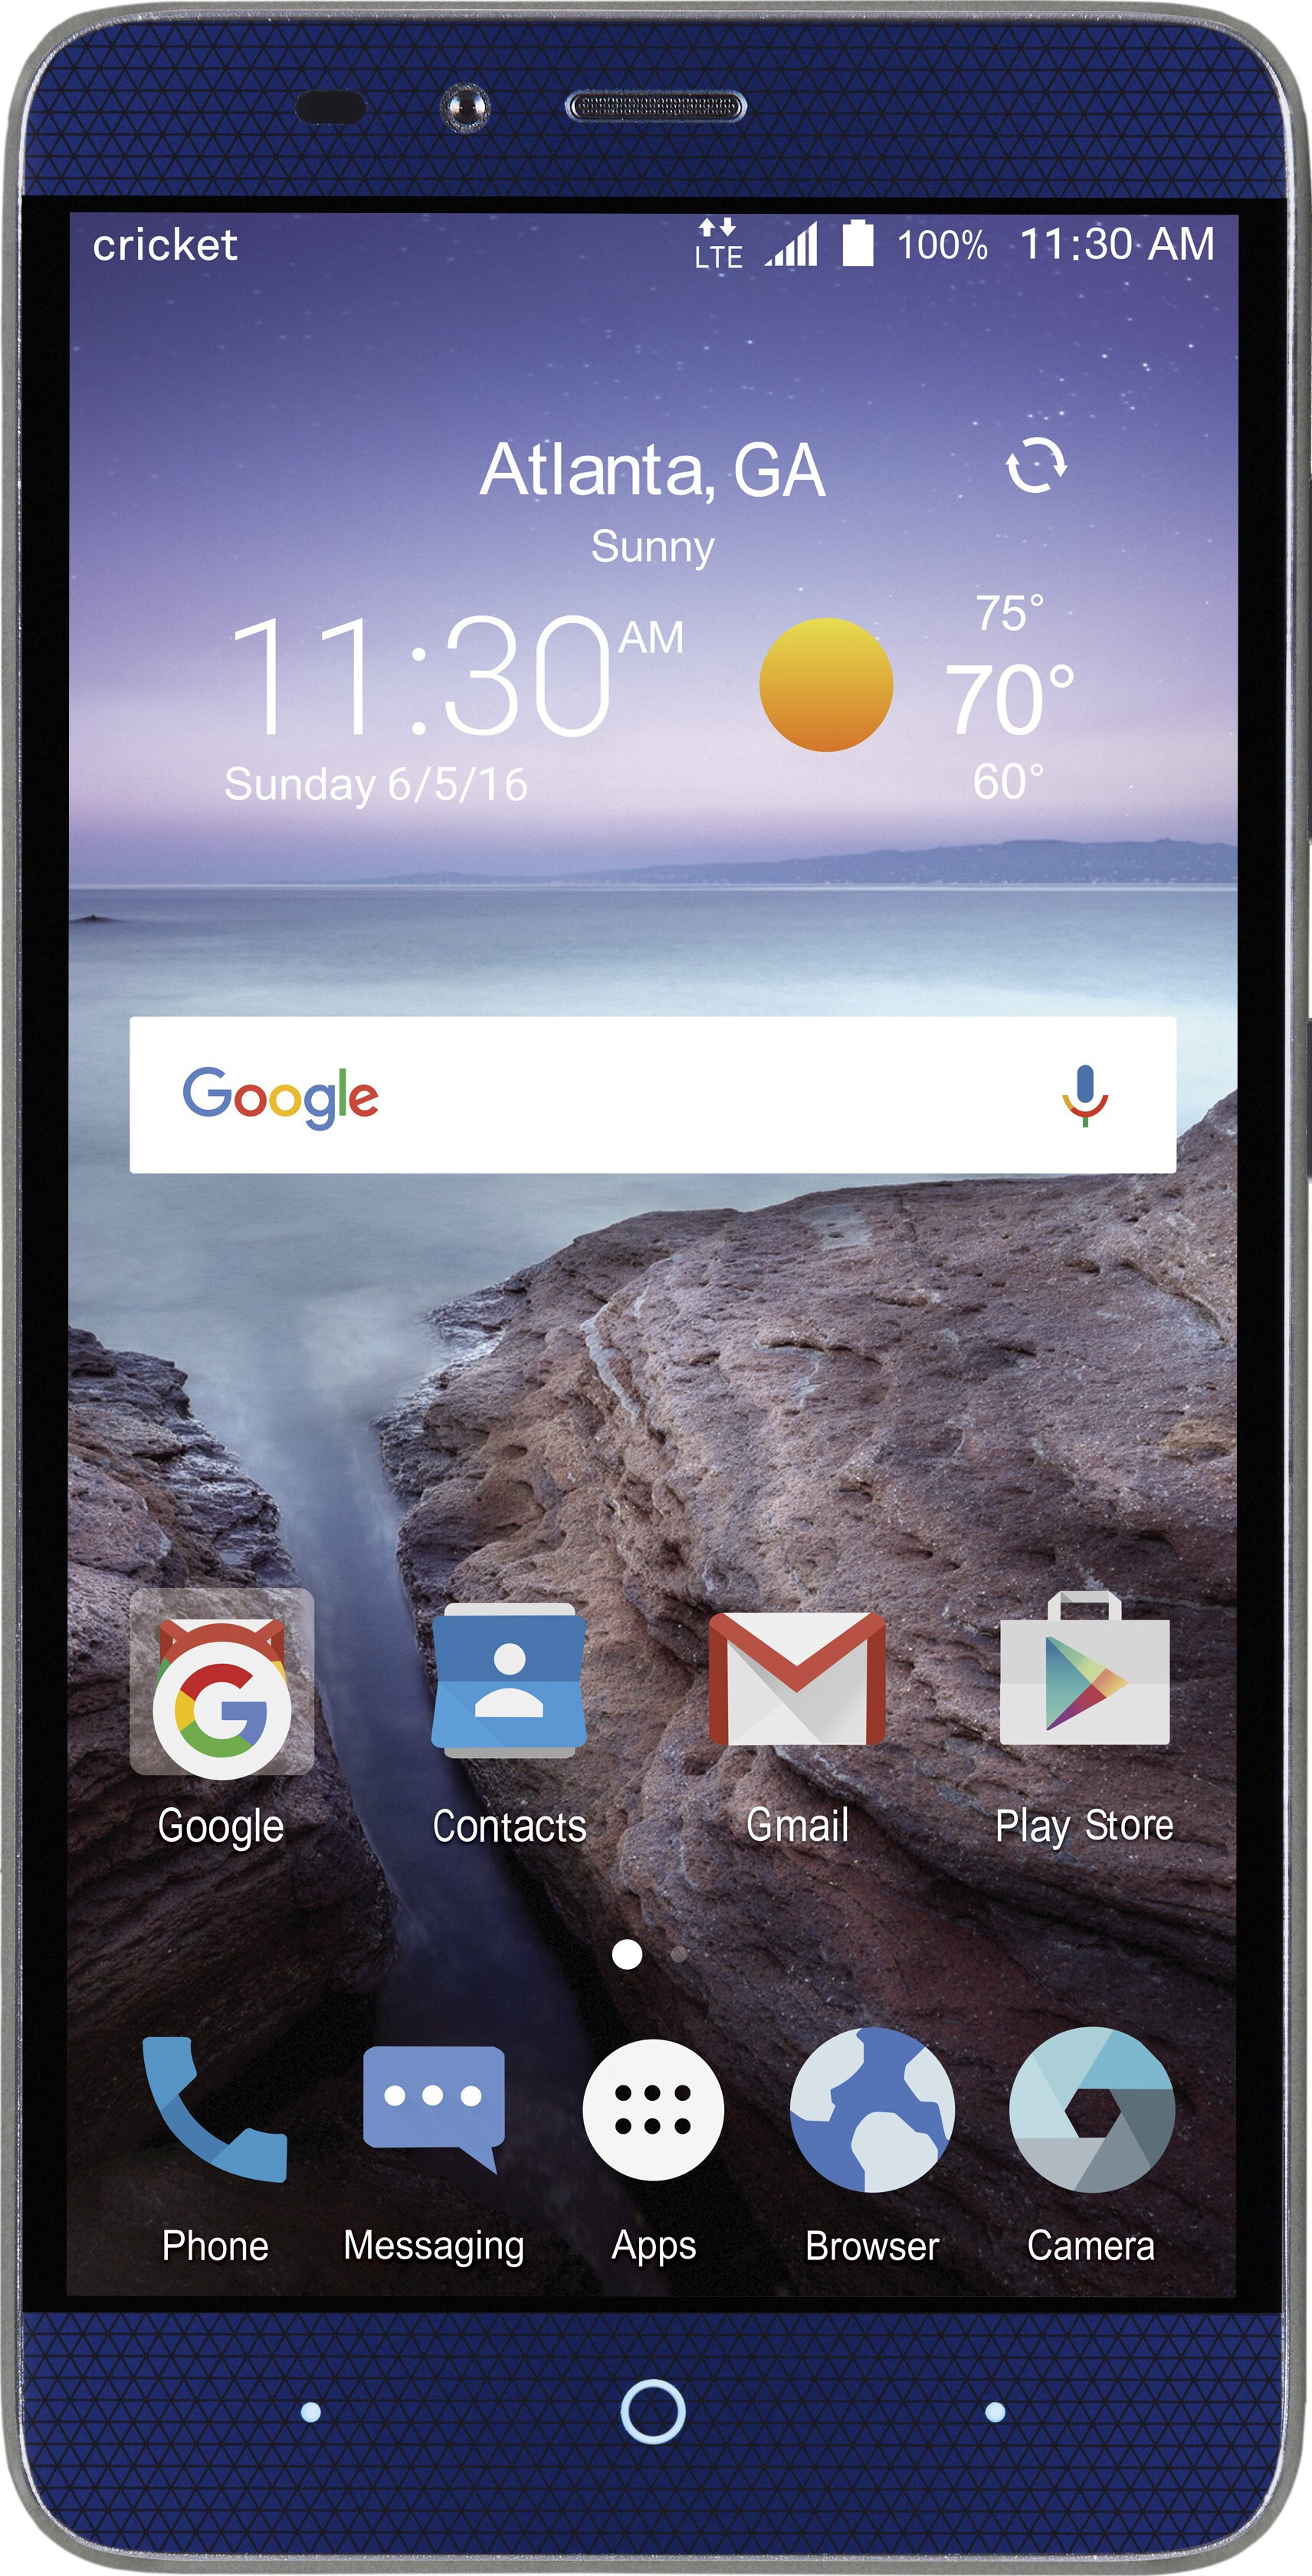 said, can zte max pro size used checking constantly